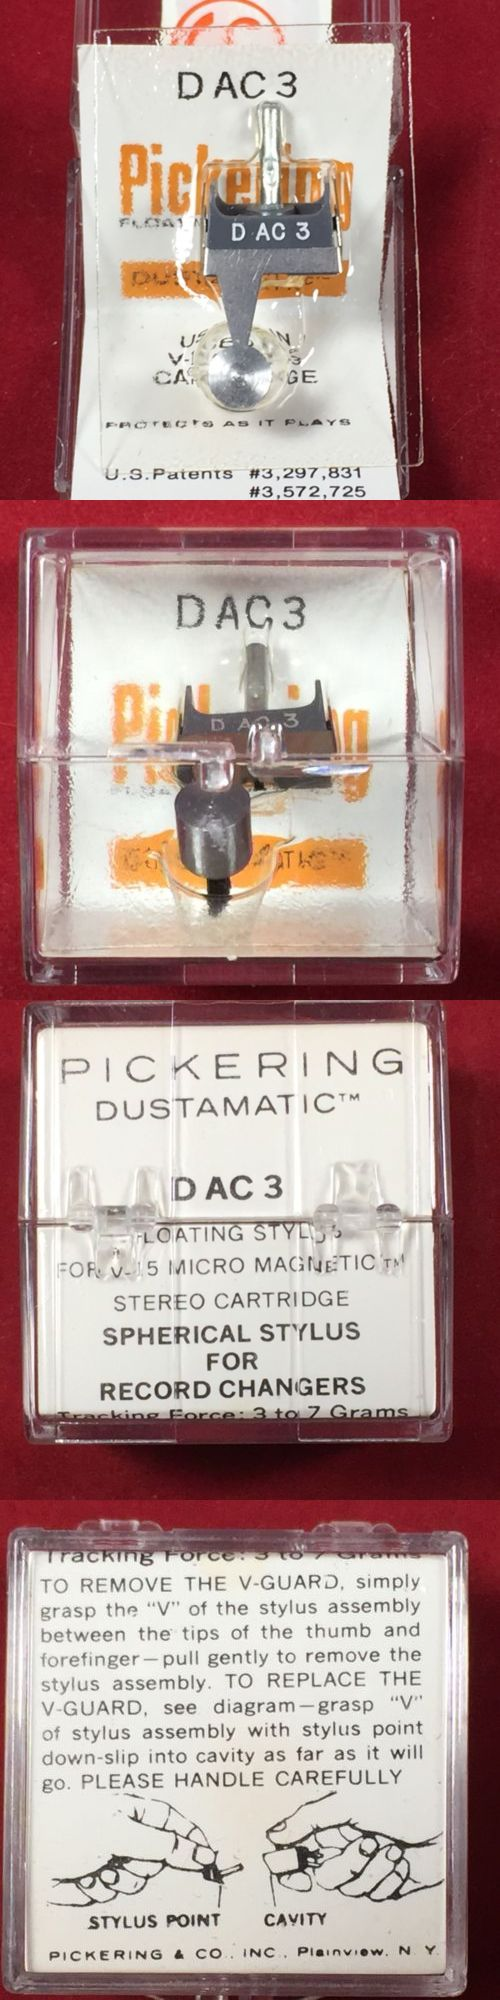 Record Player Turntable Parts: Genuine Pickering D Ac3 Stylus Needle W/ Brush For V-15/Ac-3 Turntable Cartridge -> BUY IT NOW ONLY: $49.99 on eBay!